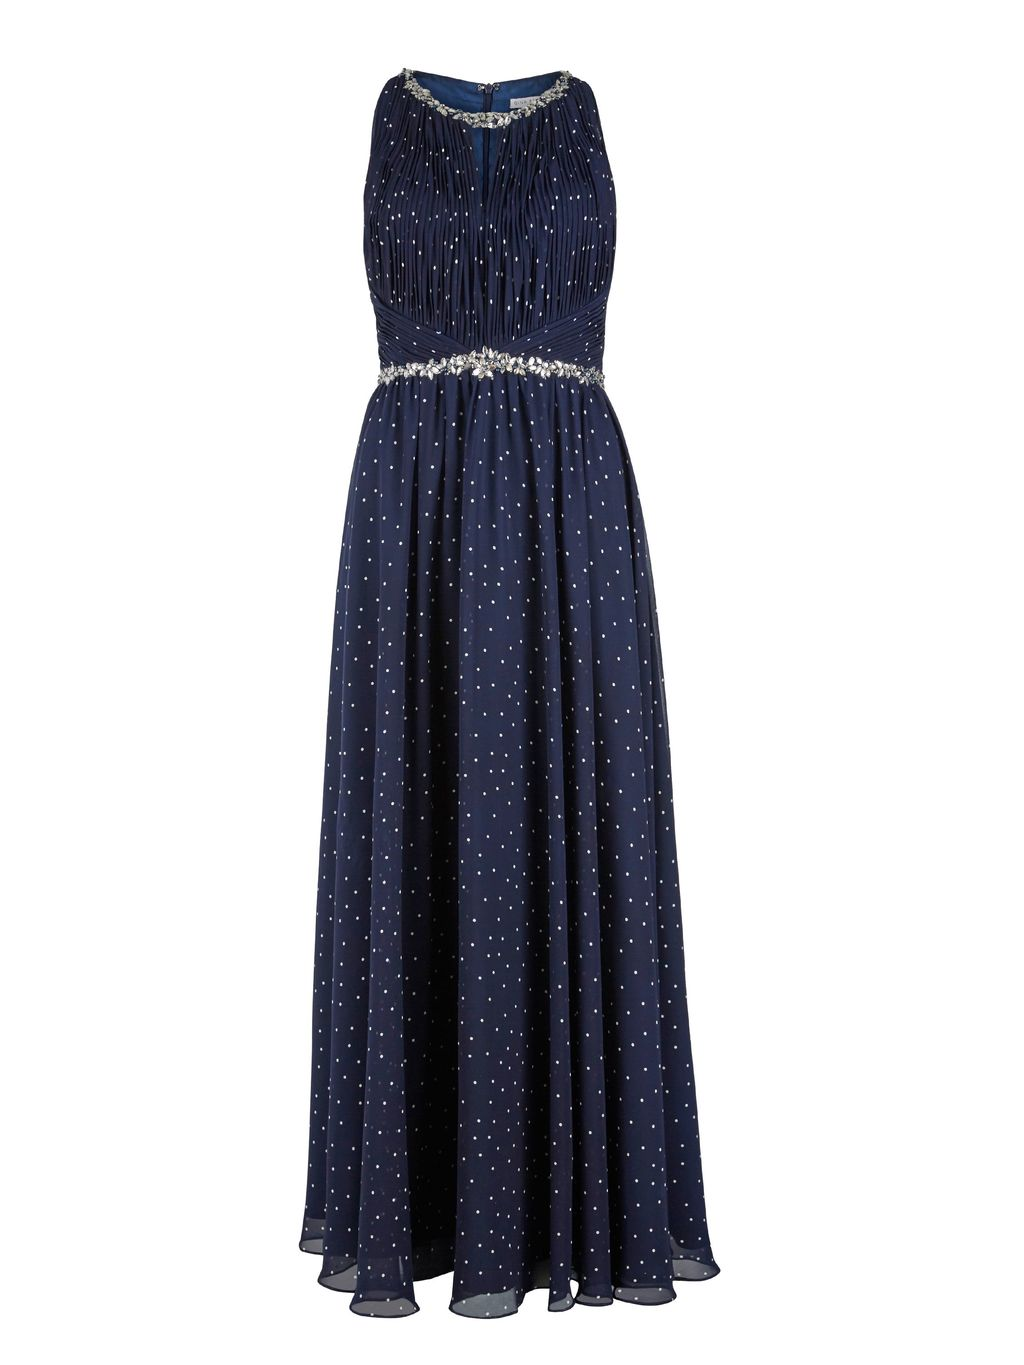 Long Spotty Dress, Beaded Waist And Neck, Navy - sleeve style: sleeveless; style: maxi dress; pattern: polka dot; secondary colour: white; predominant colour: navy; length: floor length; fit: body skimming; fibres: polyester/polyamide - 100%; occasions: occasion; neckline: crew; sleeve length: sleeveless; texture group: sheer fabrics/chiffon/organza etc.; pattern type: fabric; embellishment: beading; season: s/s 2016; wardrobe: event; embellishment location: neck, waist